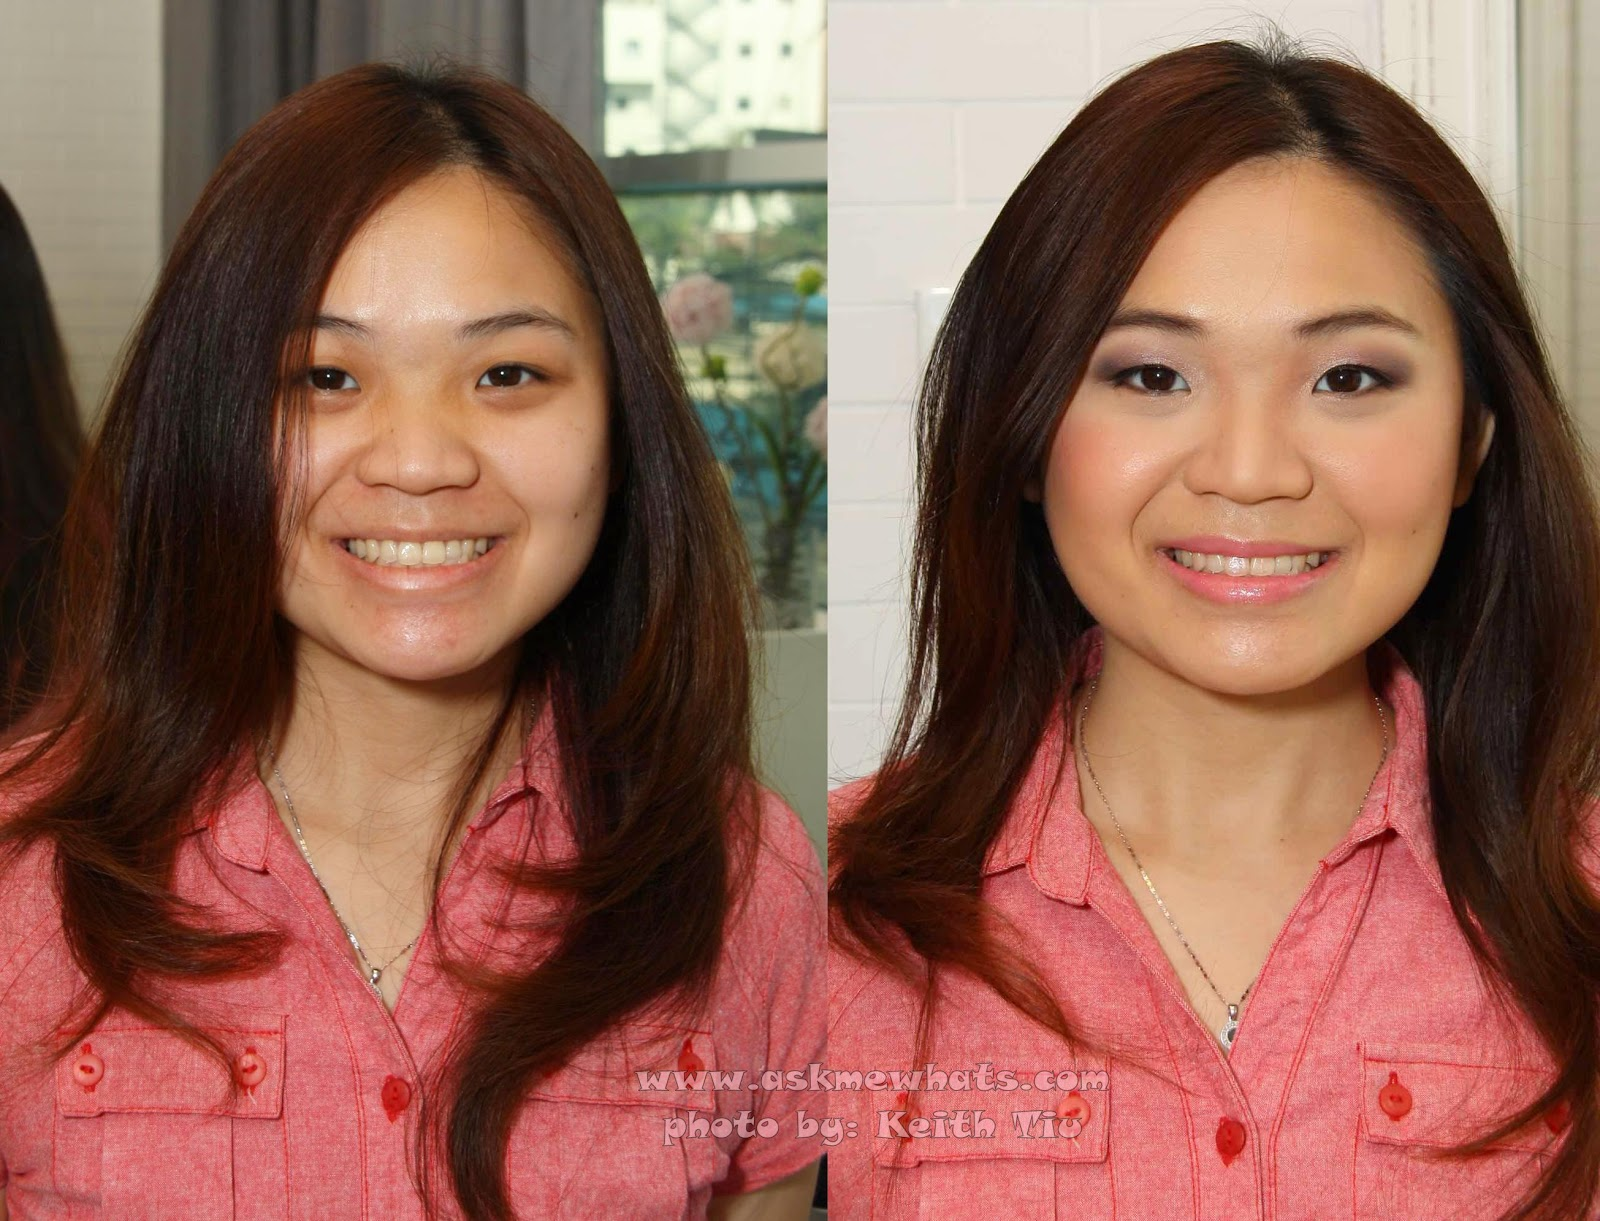 Glutathione Injection Before and After http://www.askmewhats.com/2012/12/amw-makeovers-grooms-side-engagement.html